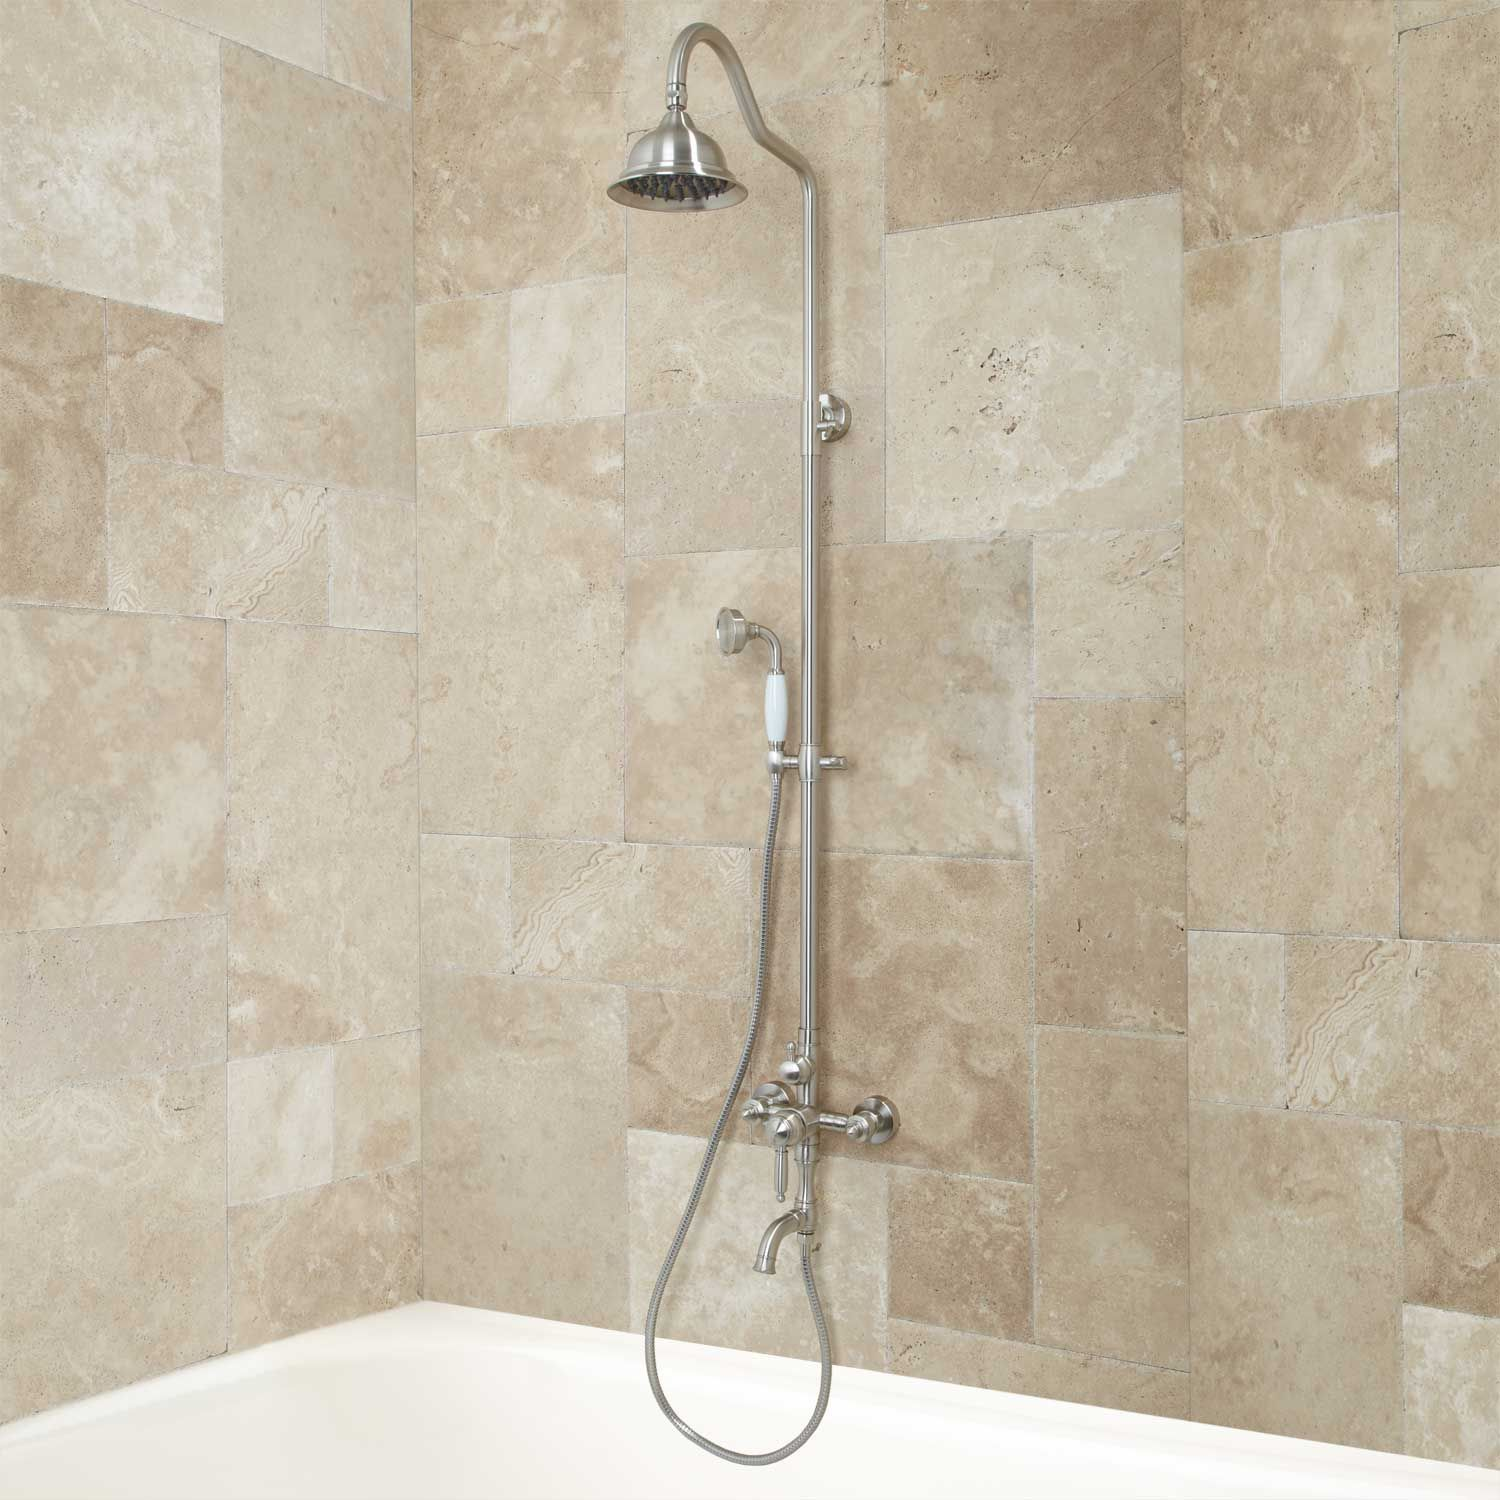 Keswick Exposed Wall Mount Shower And Tub Brushed Nickel Tub And Shower Faucets Tub Faucet Shower Tub